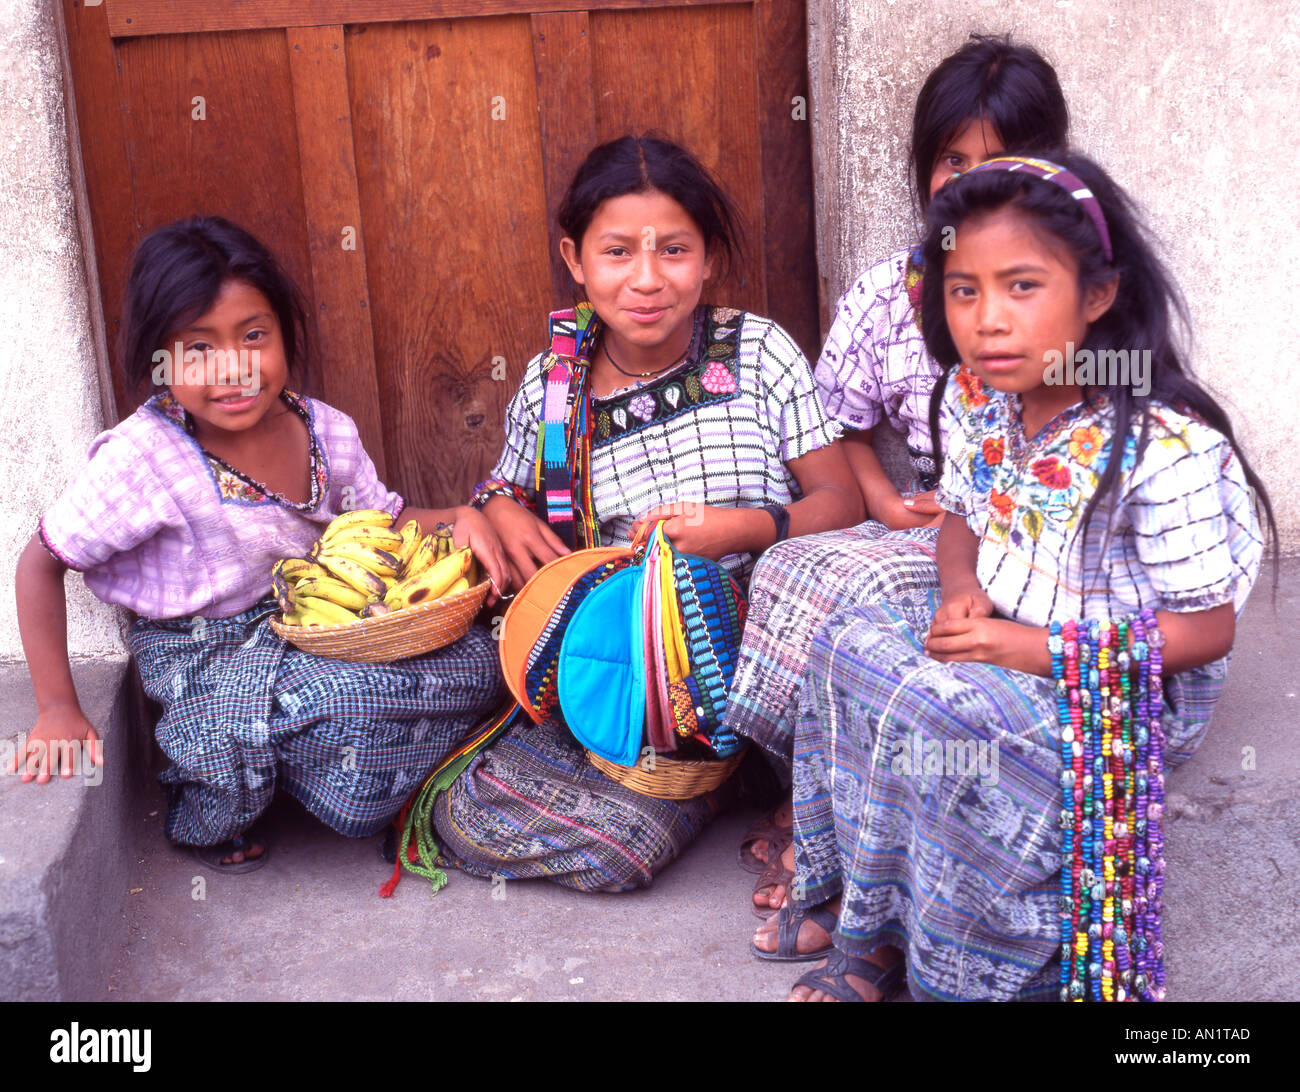 Guatemala indian girls - Stock Image